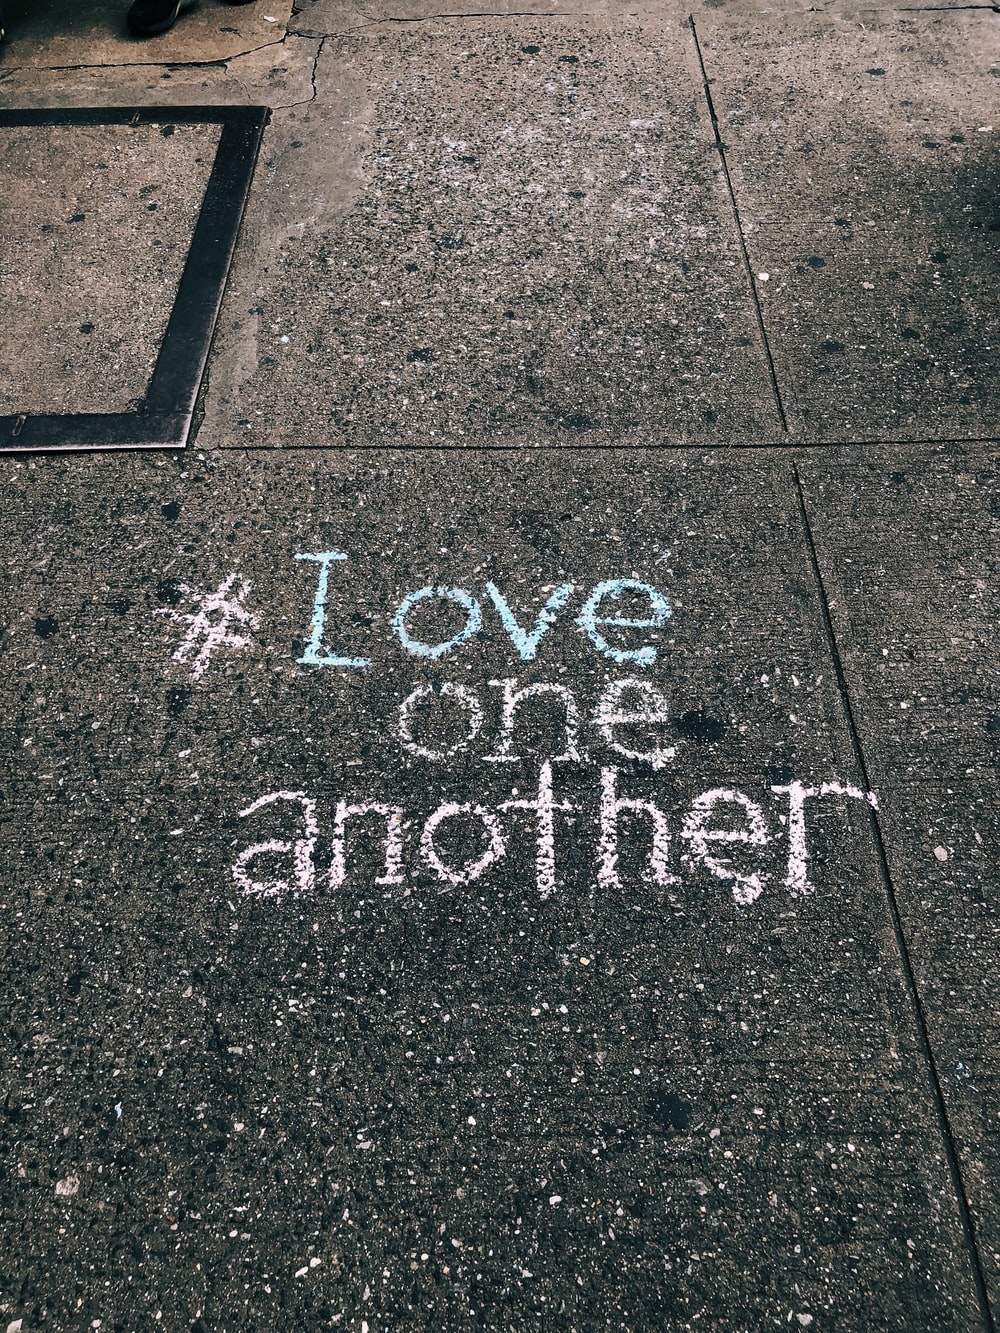 #love one another chalk written on concrete floor, apologise and make up